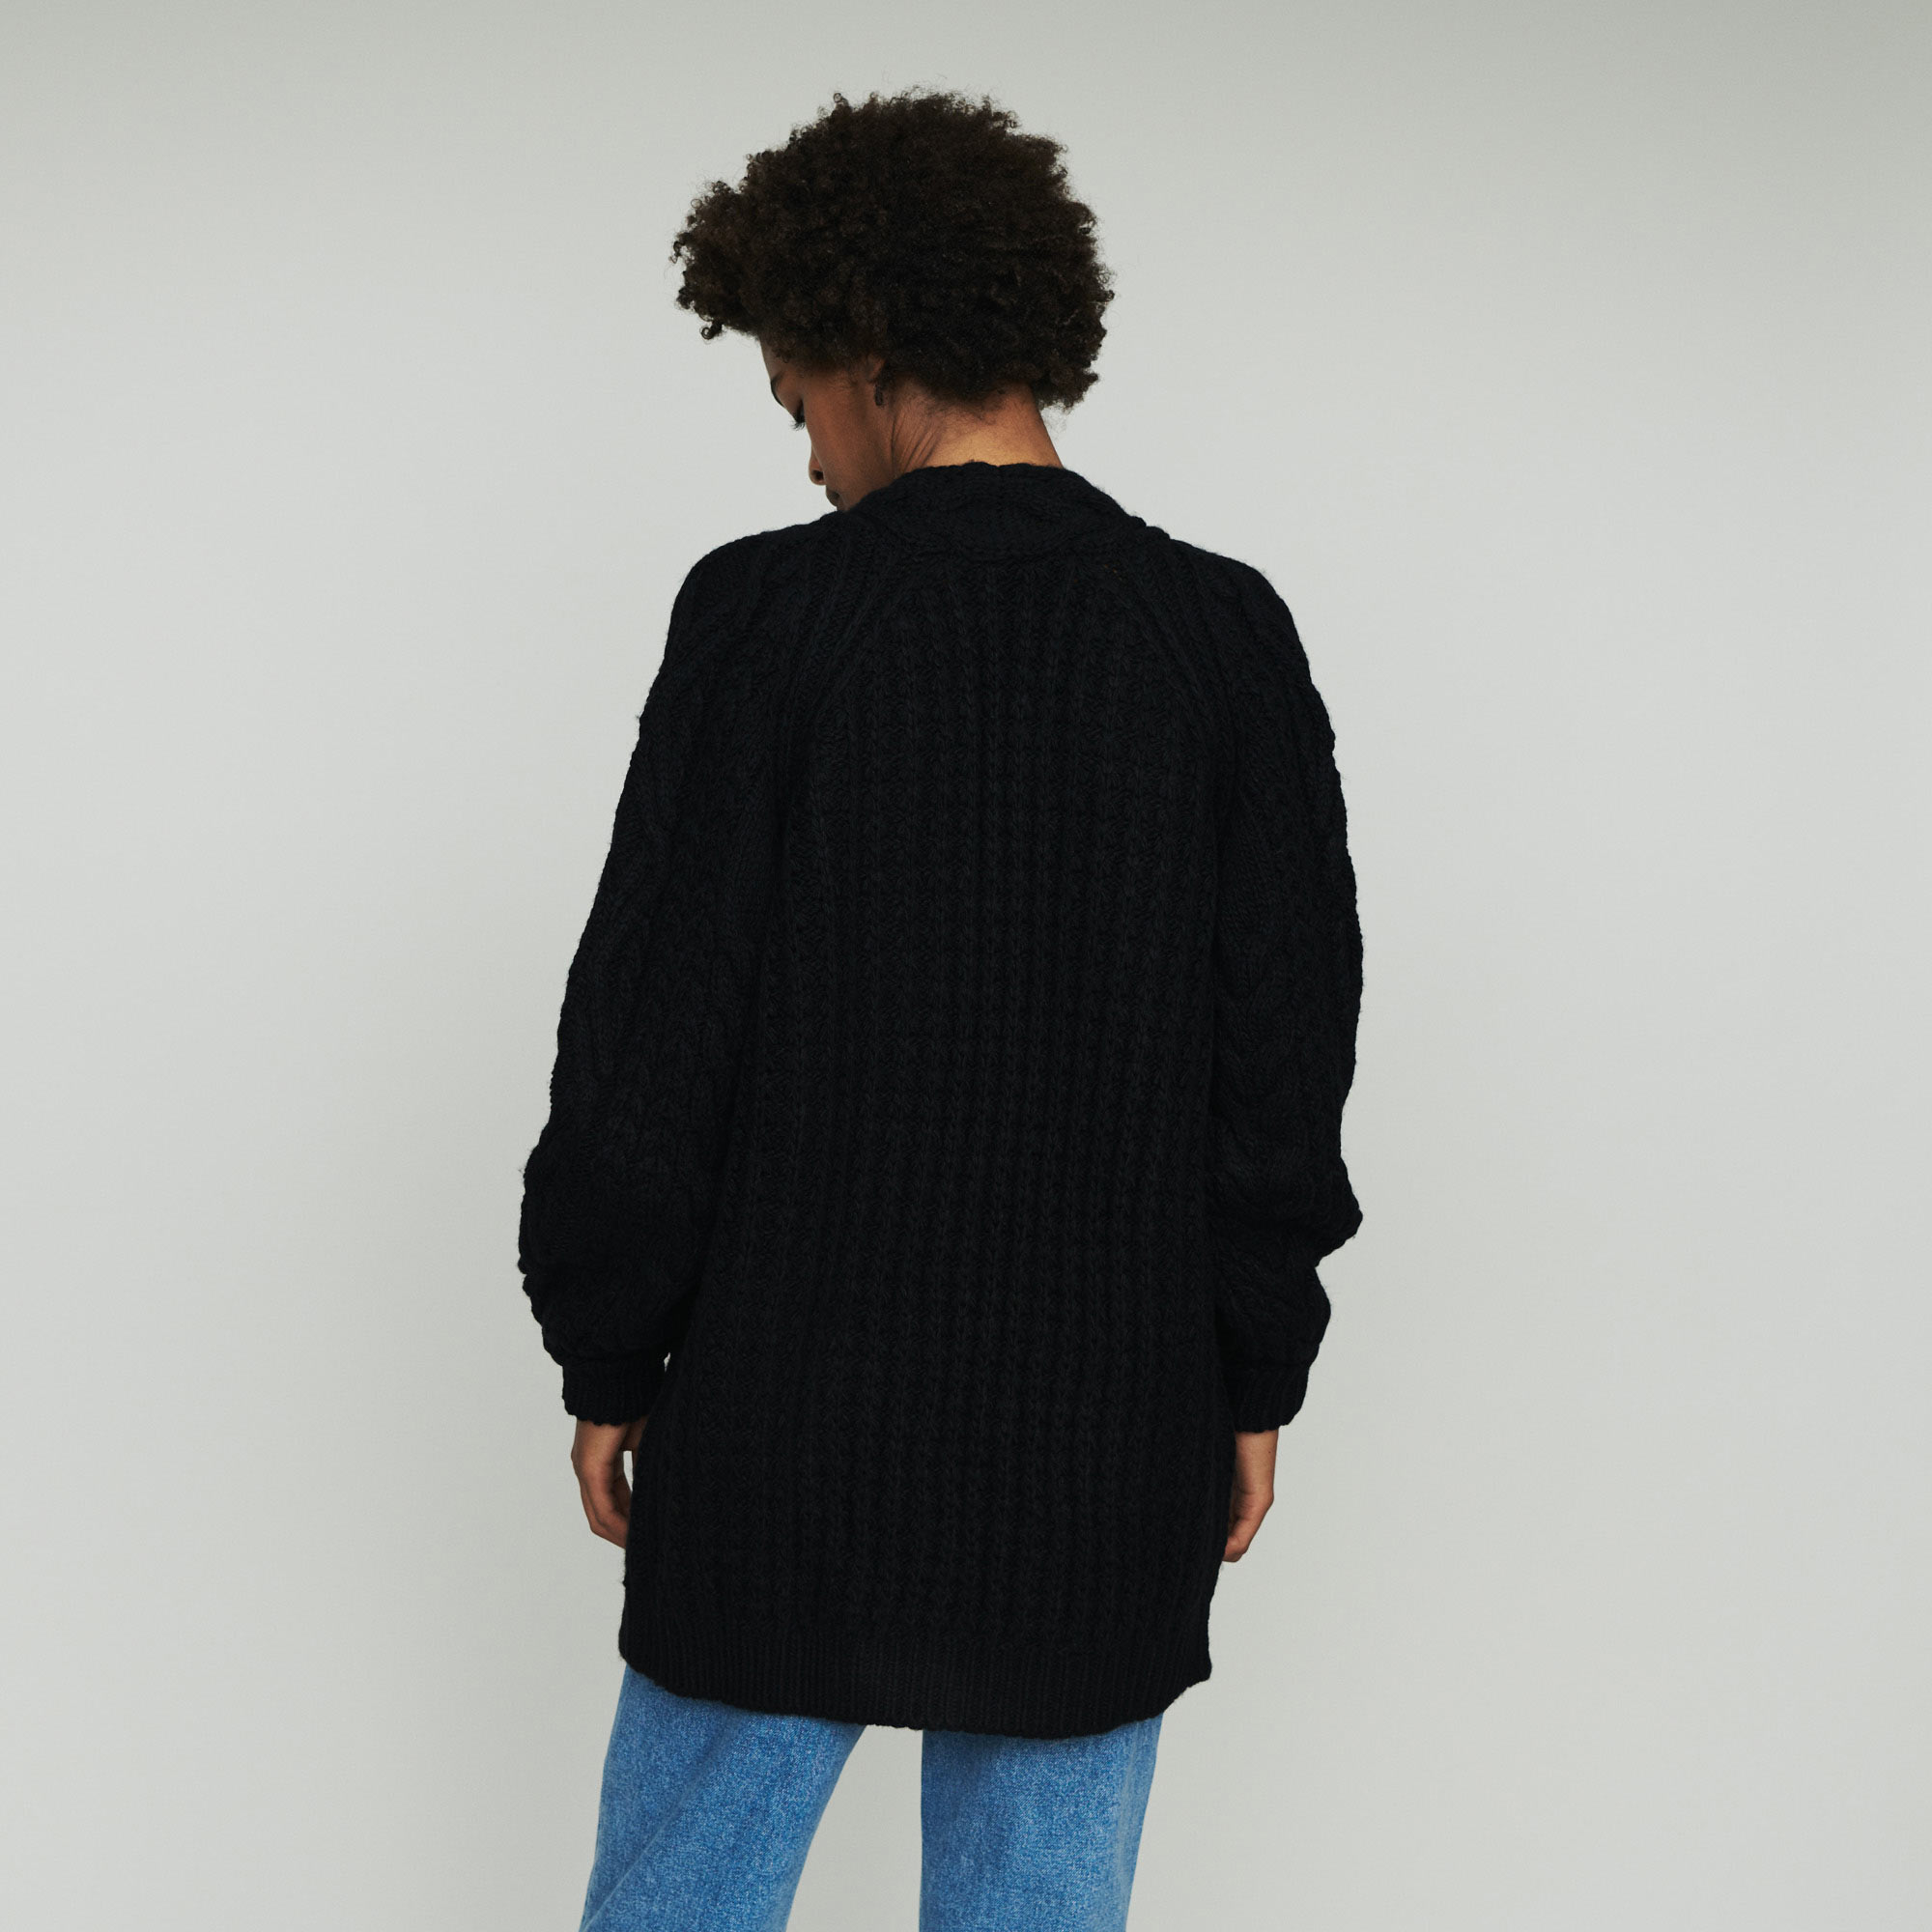 Oversize cardian in twisted mesh knit - Black